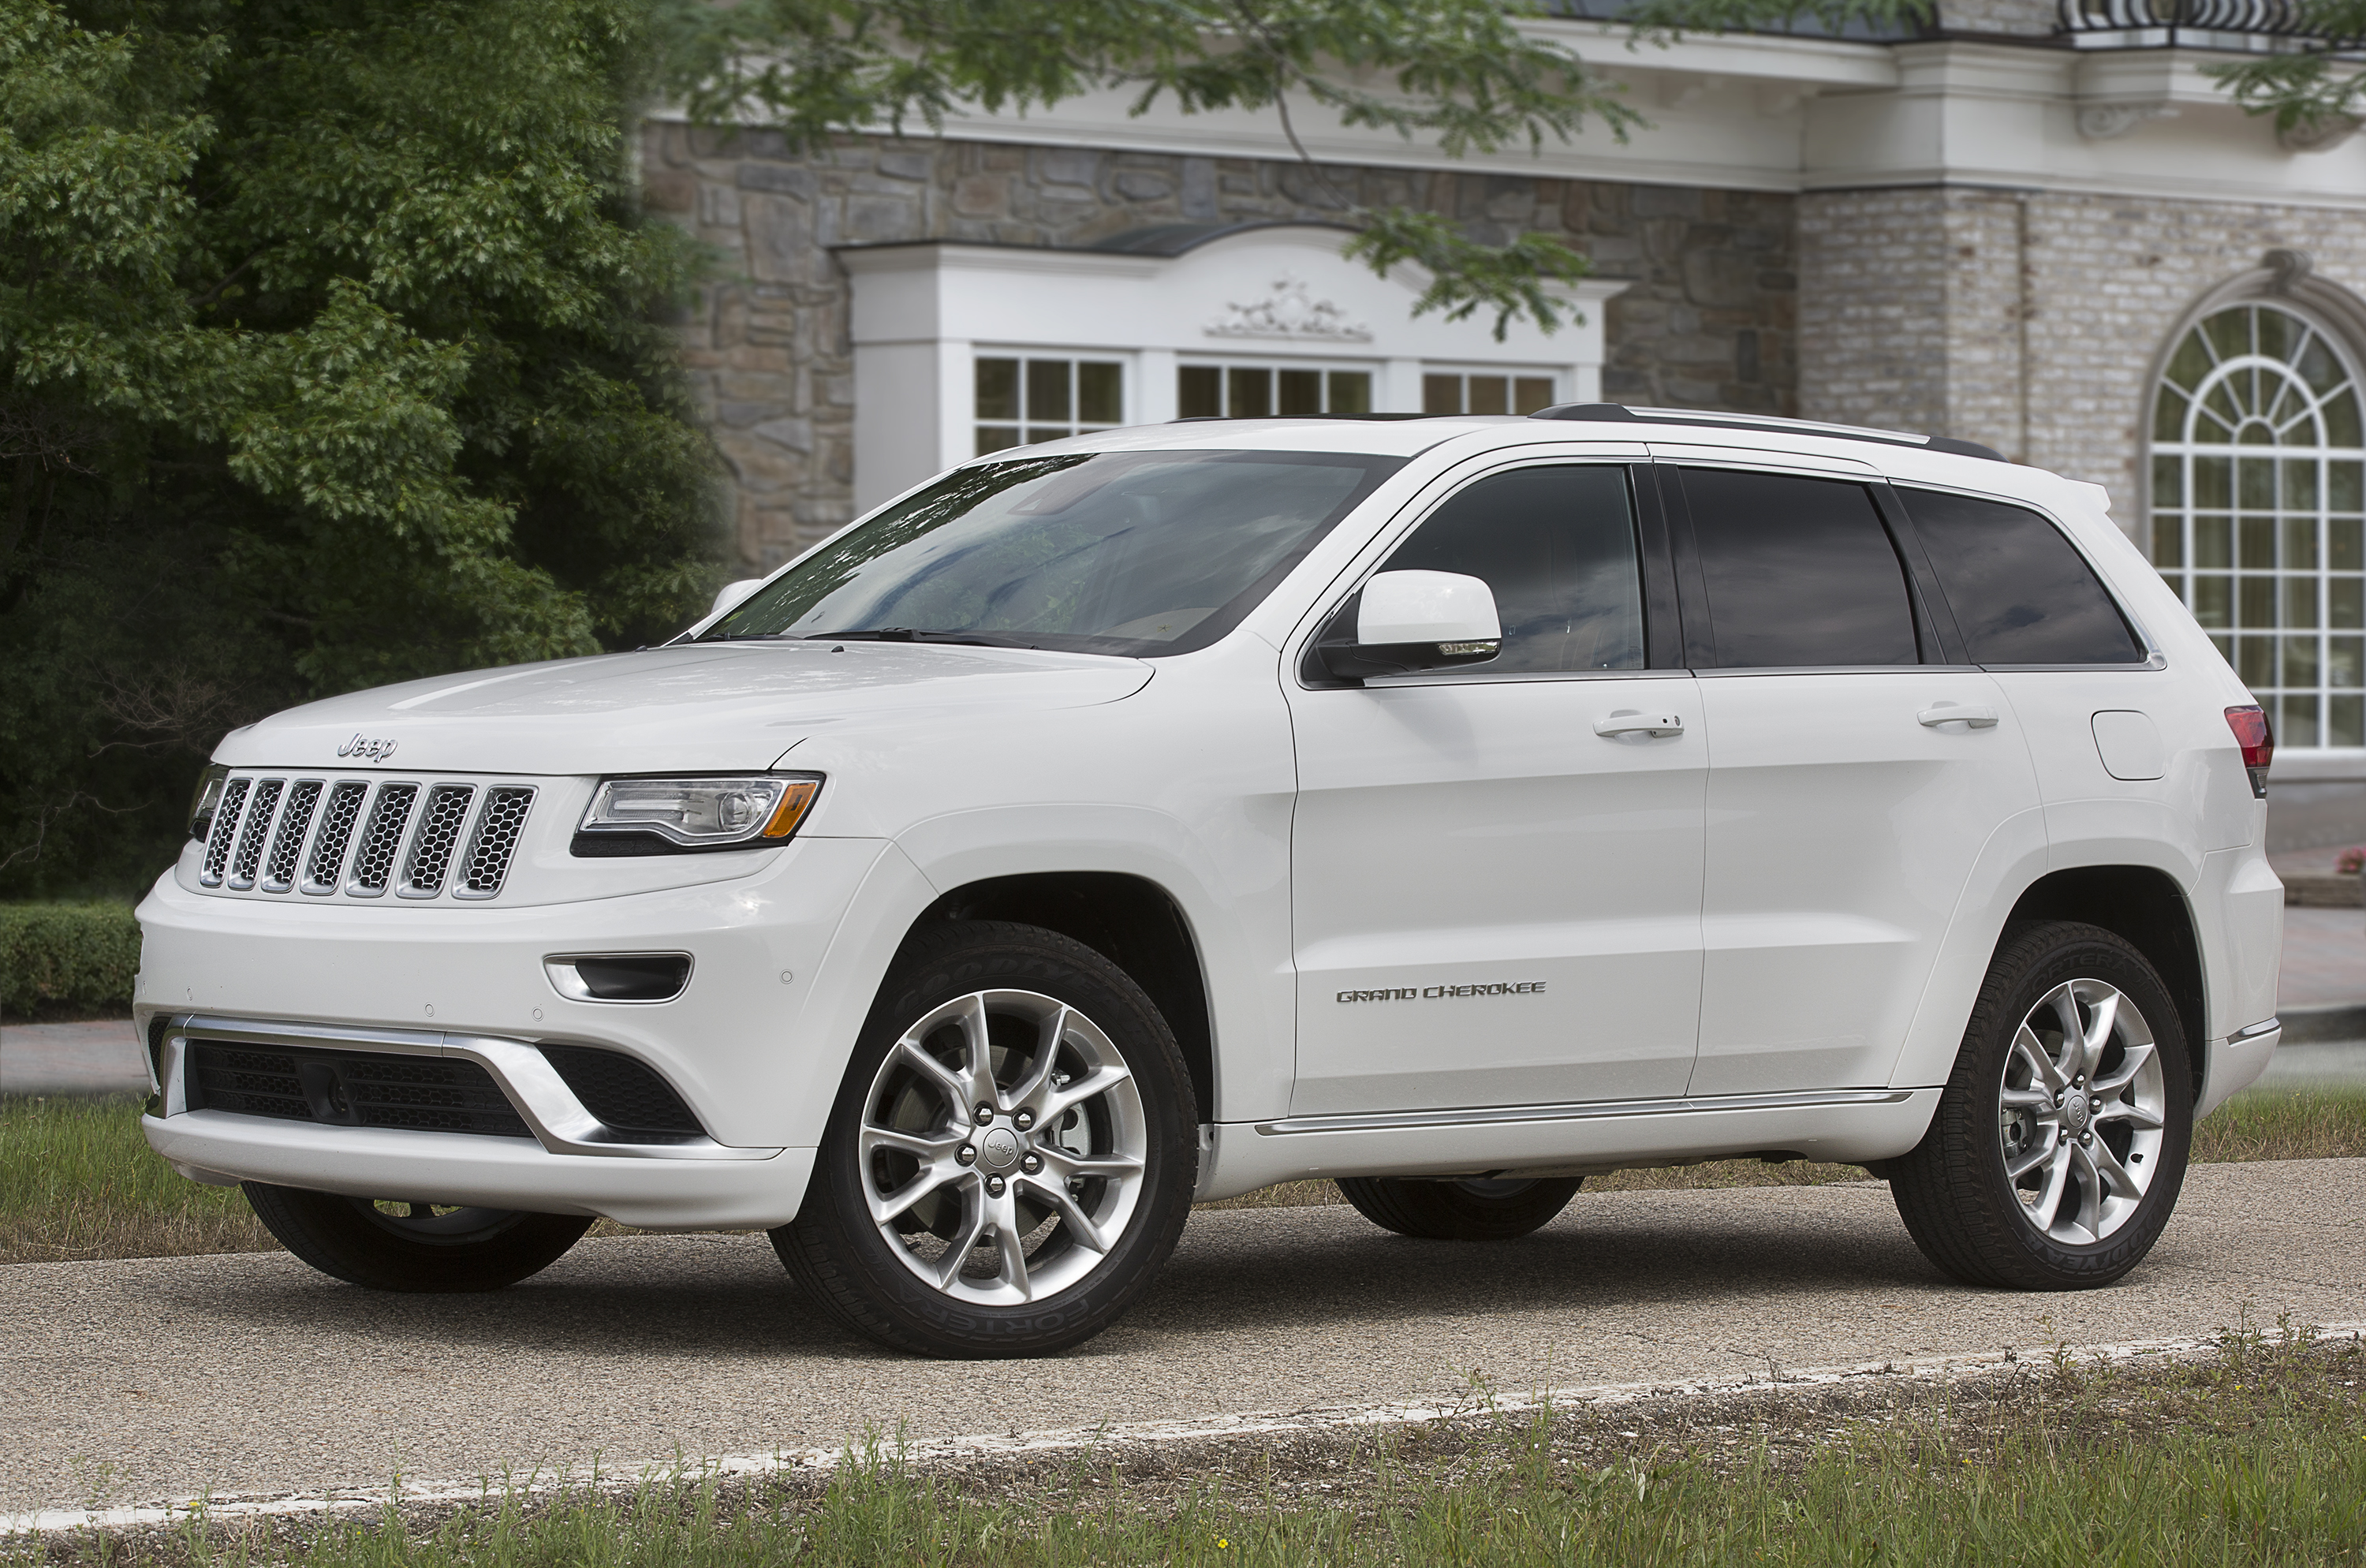 summit cherokee used four drive owned sport in warrenton grand pre jeep utility inventory wheel